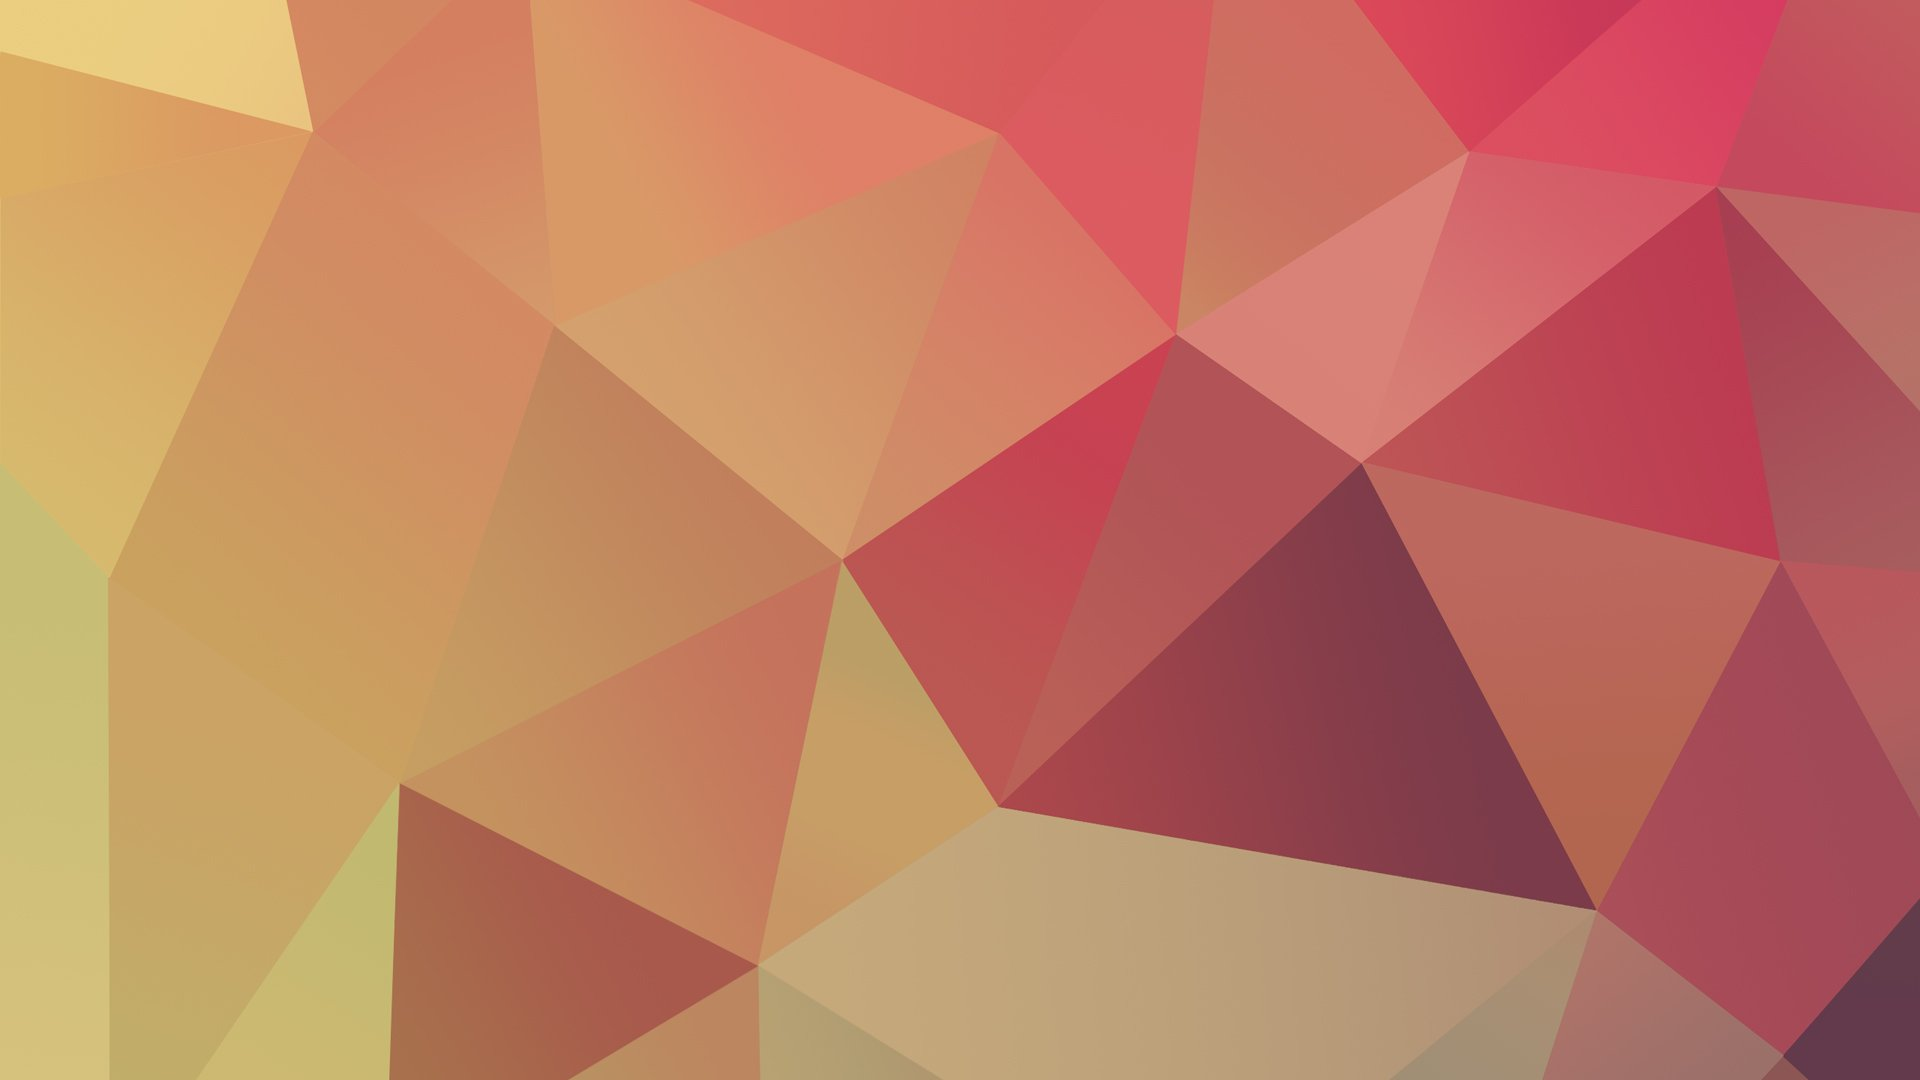 jelly nexus android wallpaper geometric wallpapers abstract 1920x1080